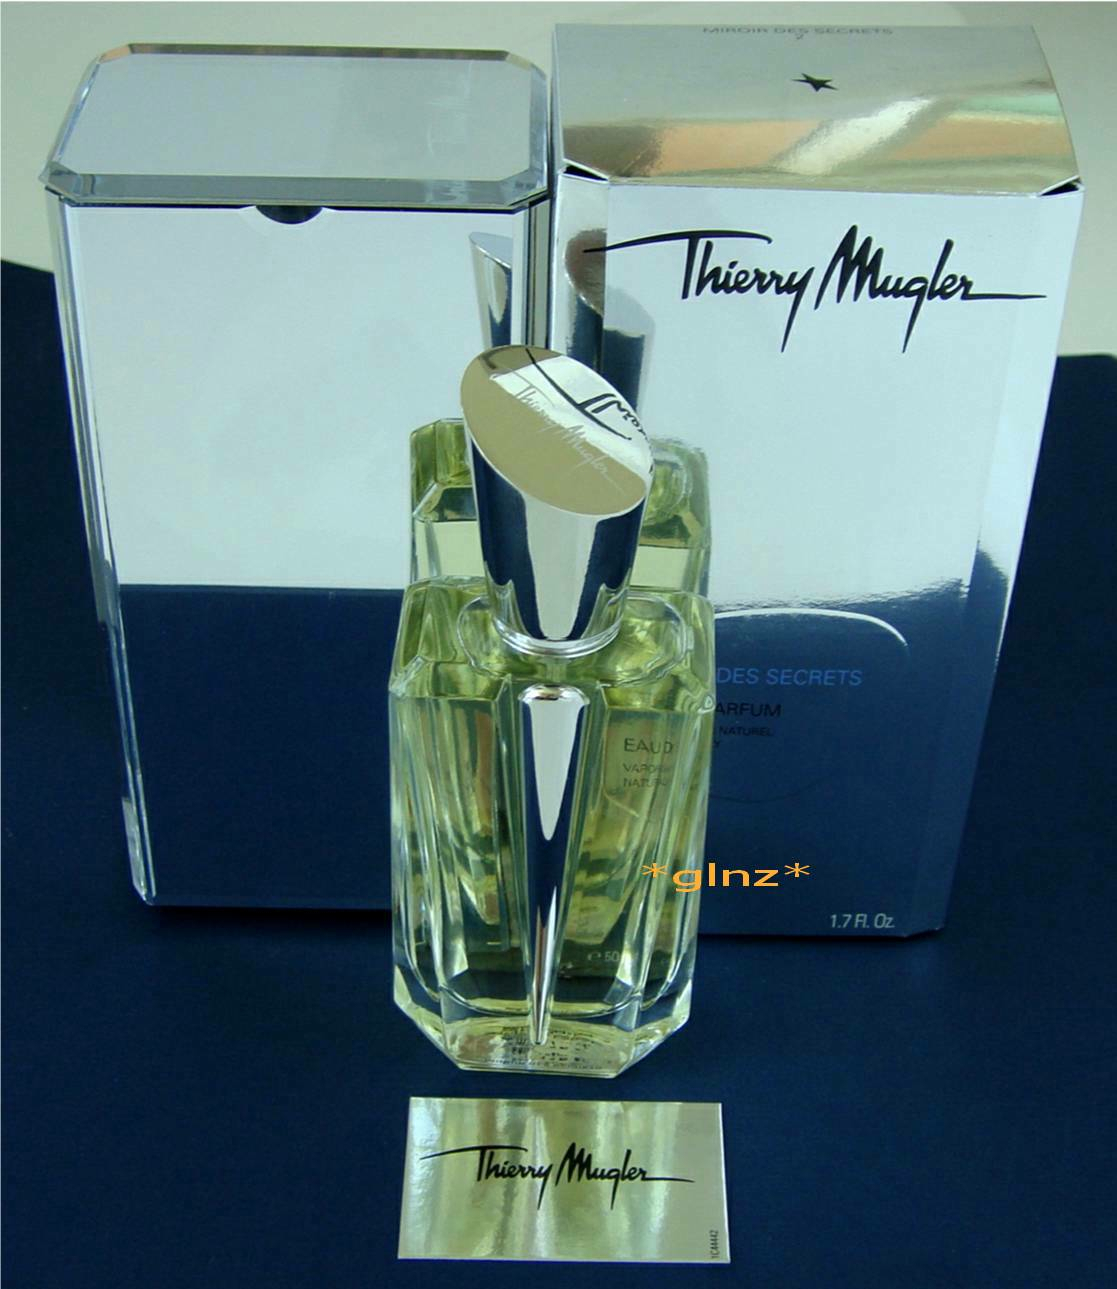 The perfume paradox worldofbeautytips for Thierry mugler mirror mirror collection miroir des majestes